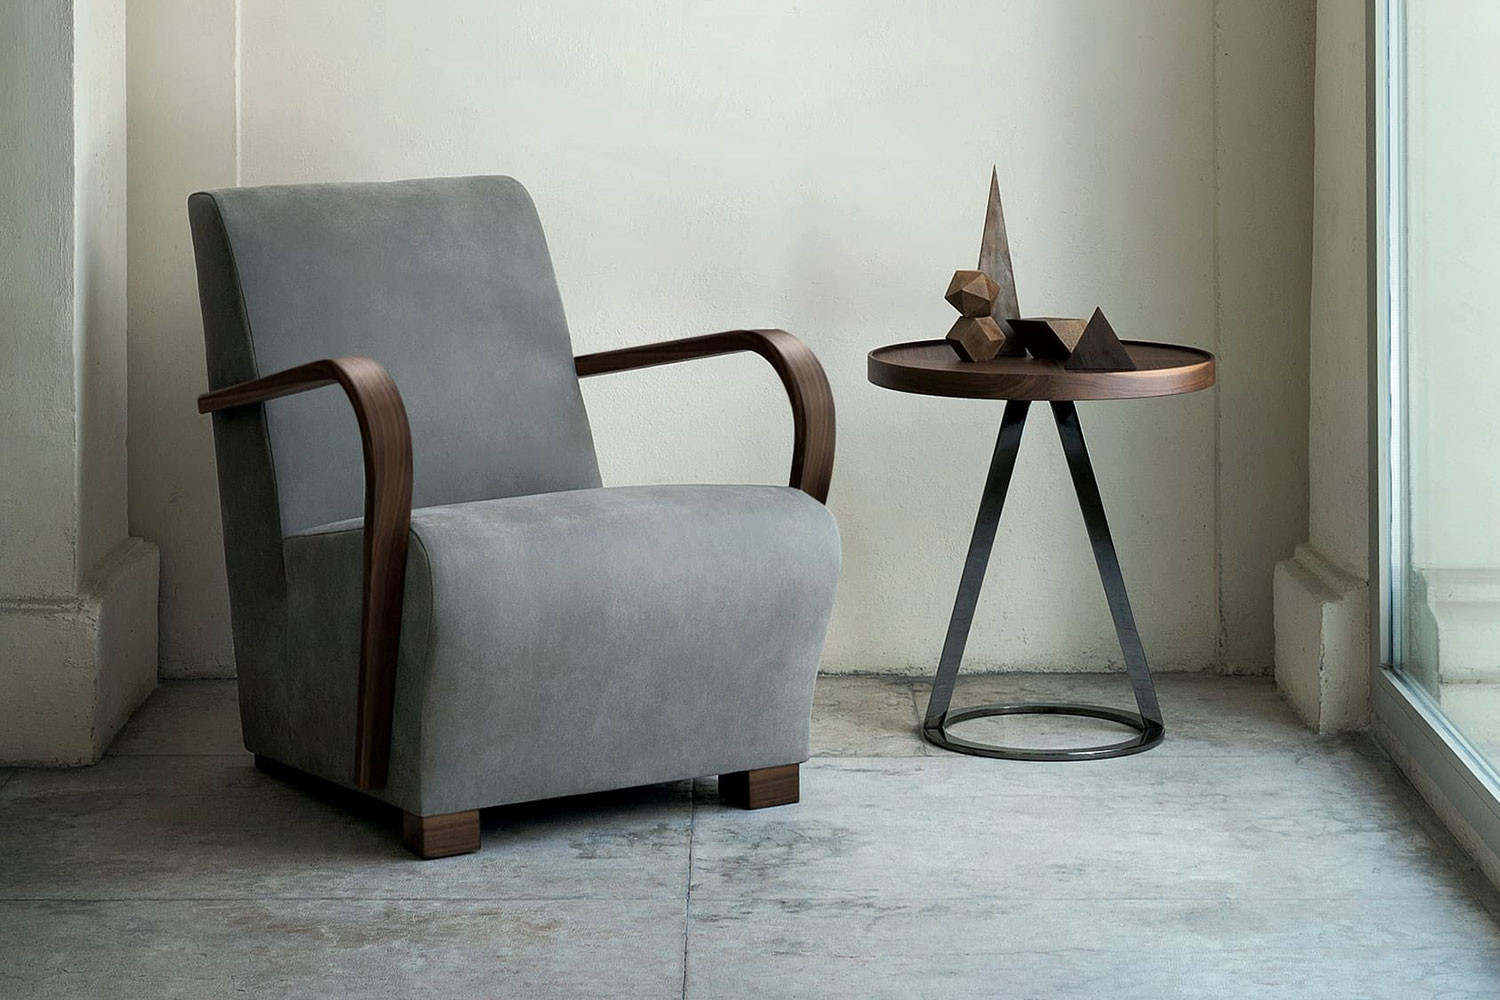 Upholstered bentwood armchair with steam bent curved arms crafted from prized solid walnut